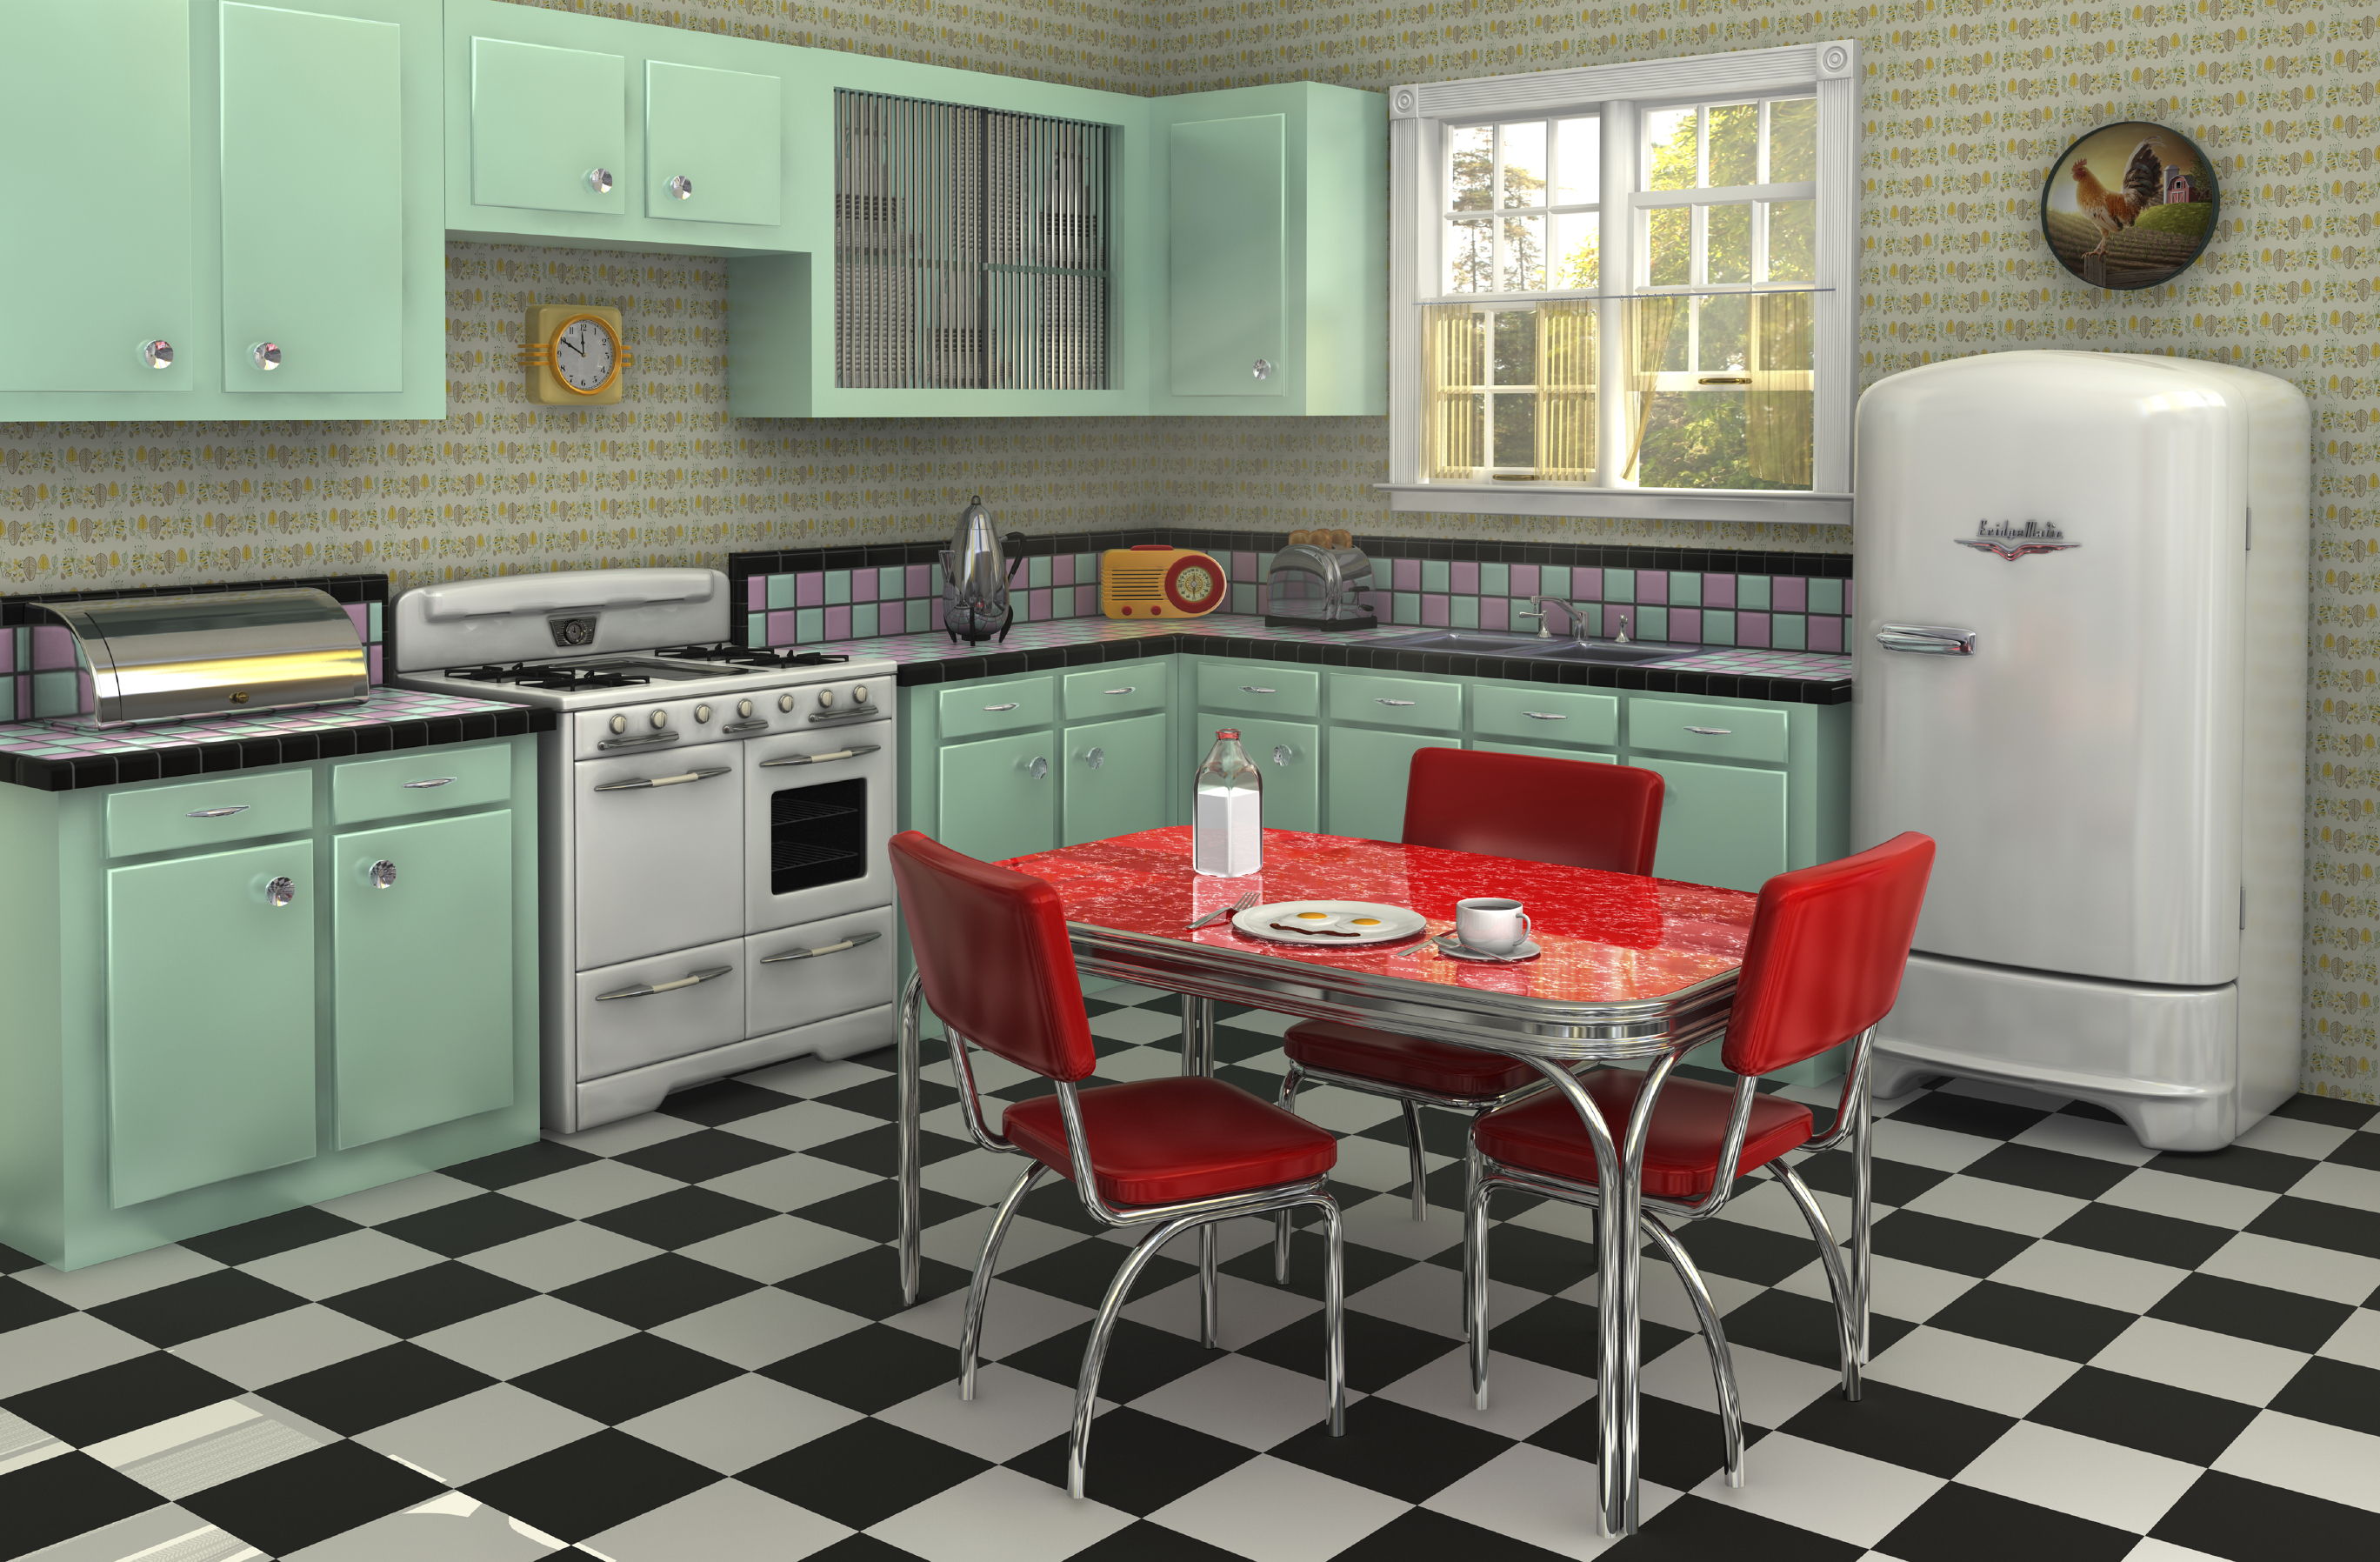 Retro kitchen from the 1950s complete with stove, refrigerator, chrome dinette set, percolator, toaster, bread box and radio